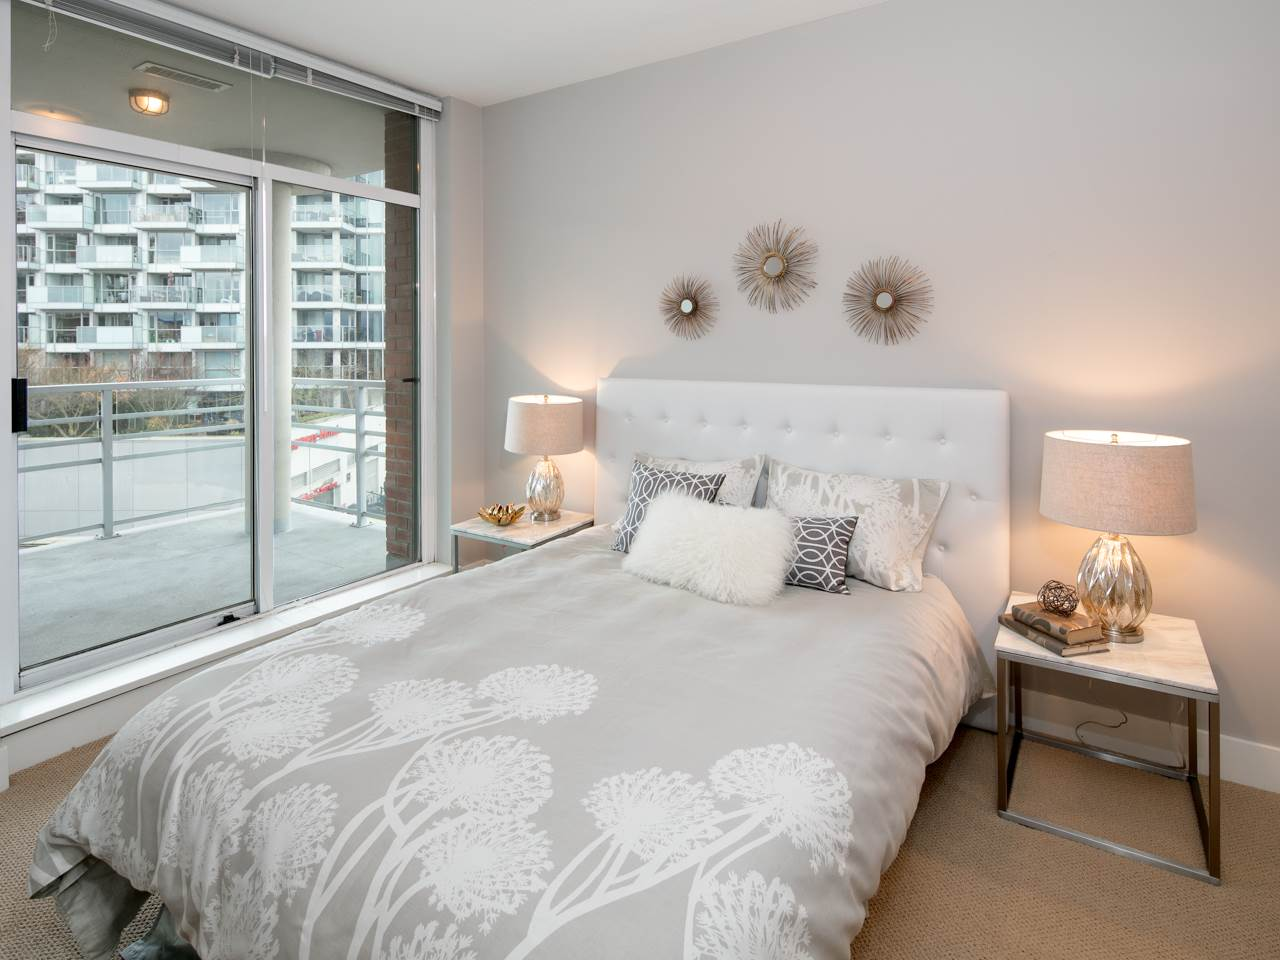 "Photo 16: 512 298 E 11TH Avenue in Vancouver: Mount Pleasant VE Condo for sale in ""The Sophia"" (Vancouver East)  : MLS(r) # R2124368"